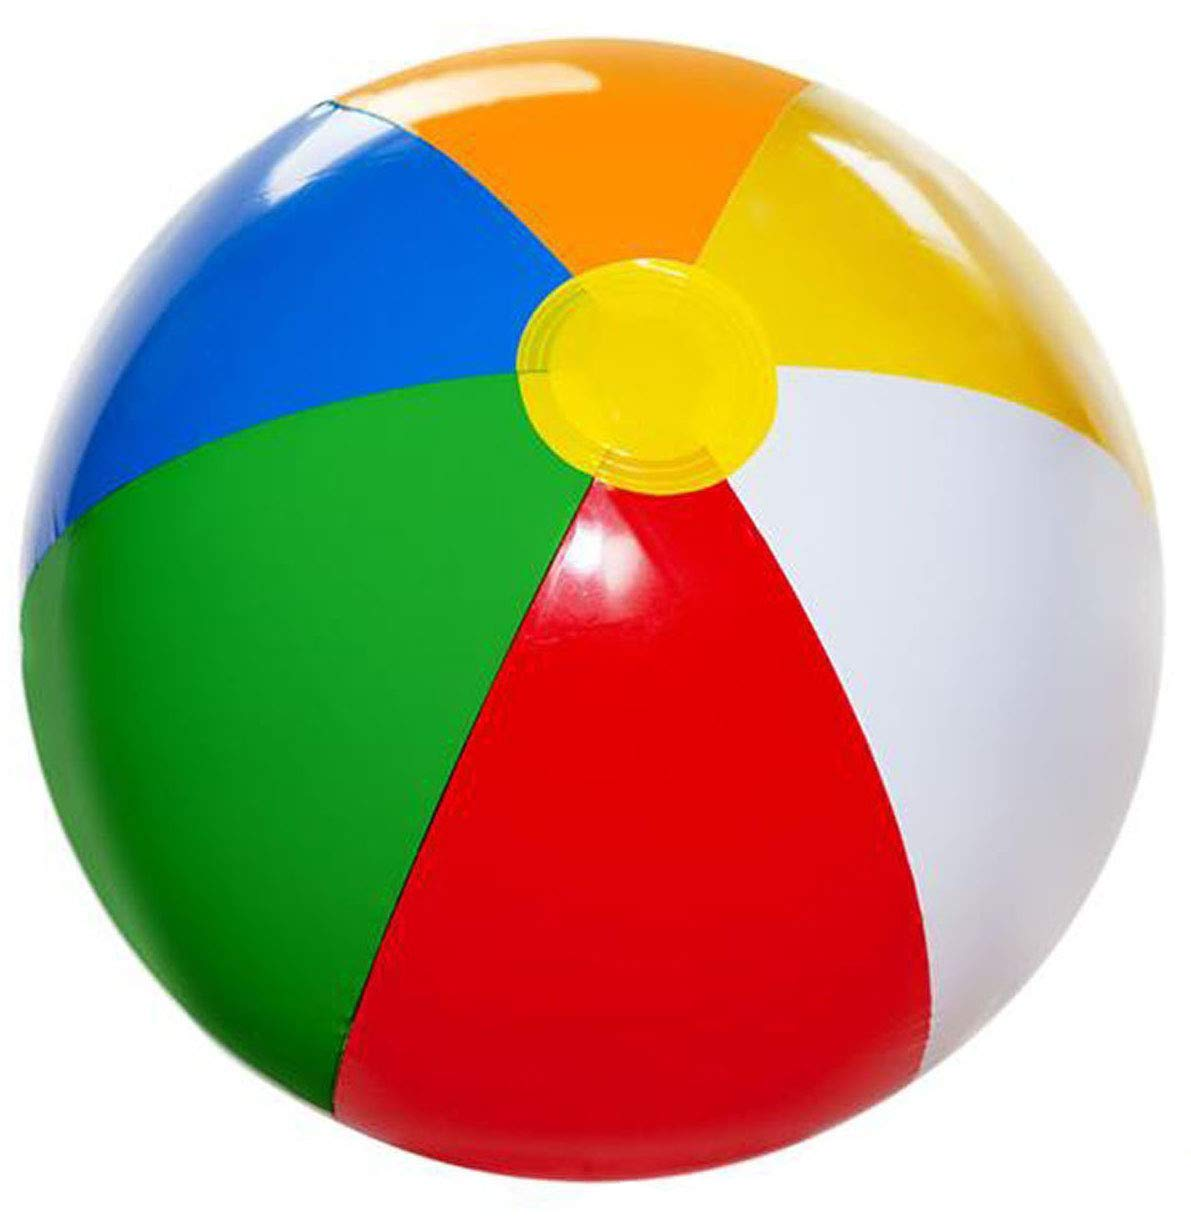 Inflatable Beach Balls Pack of 12 Bulk Large 20 Inches, Summer Beach & Pool Party Supplies, Beach Ball for Kids Toddlers Boys Girls, 4E's Novelty by 4E's Novelty